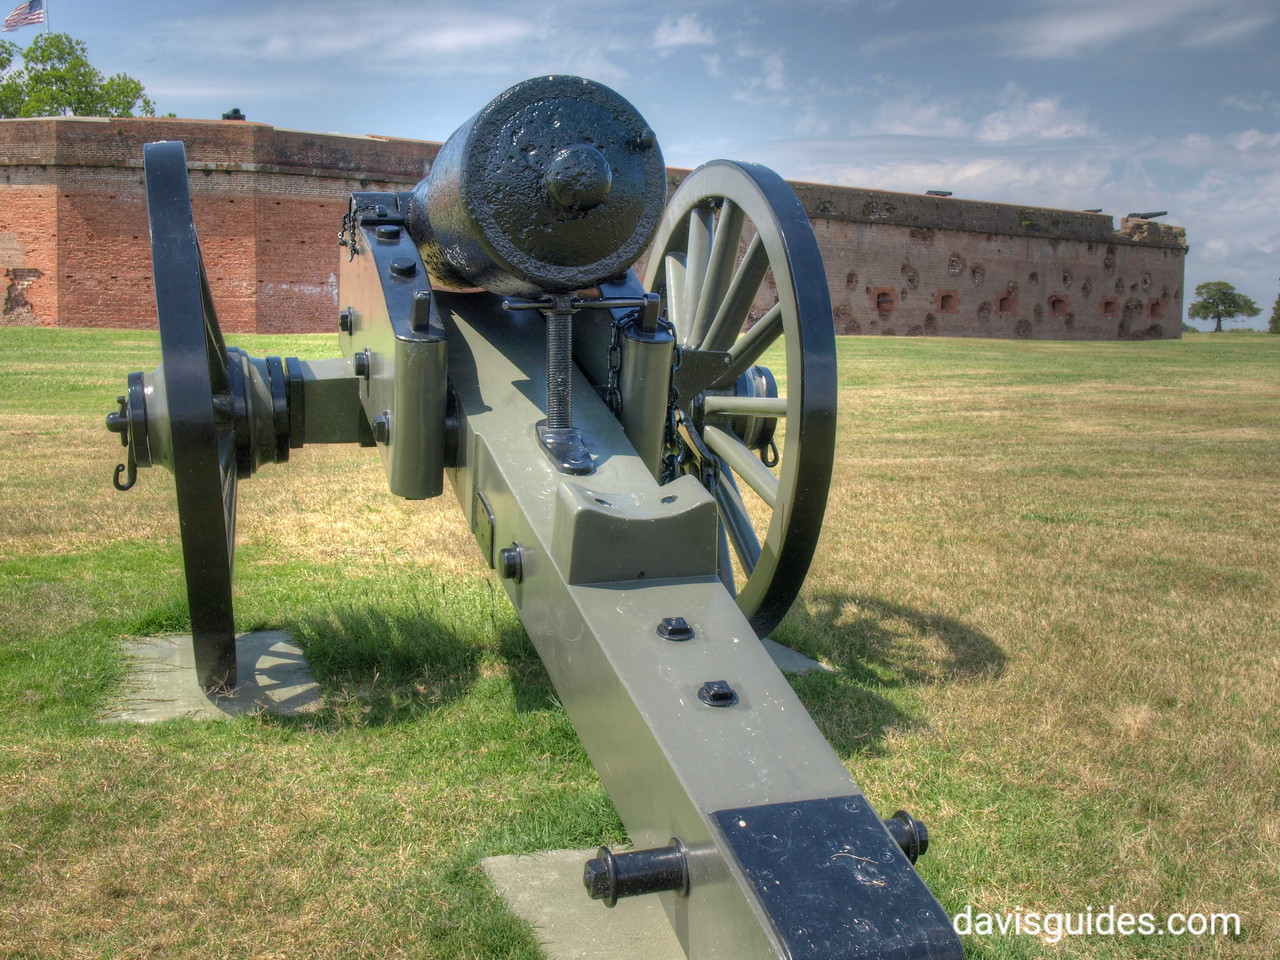 Siege cannon at Fort Pulaski National Monument